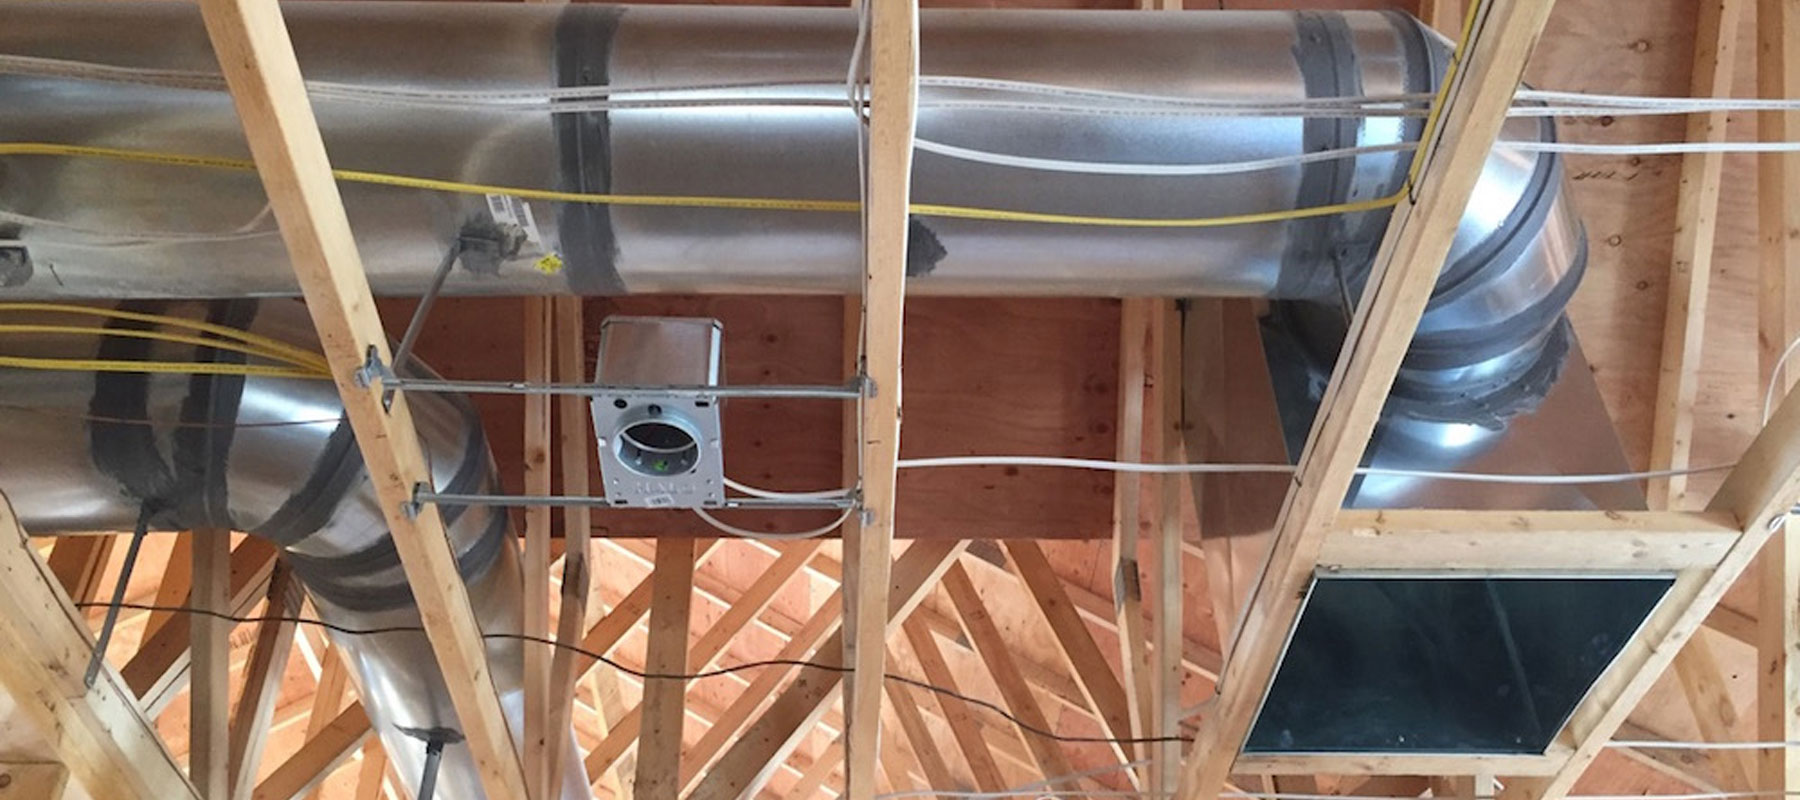 HVAC duct installation   Mr Duct Cleaner